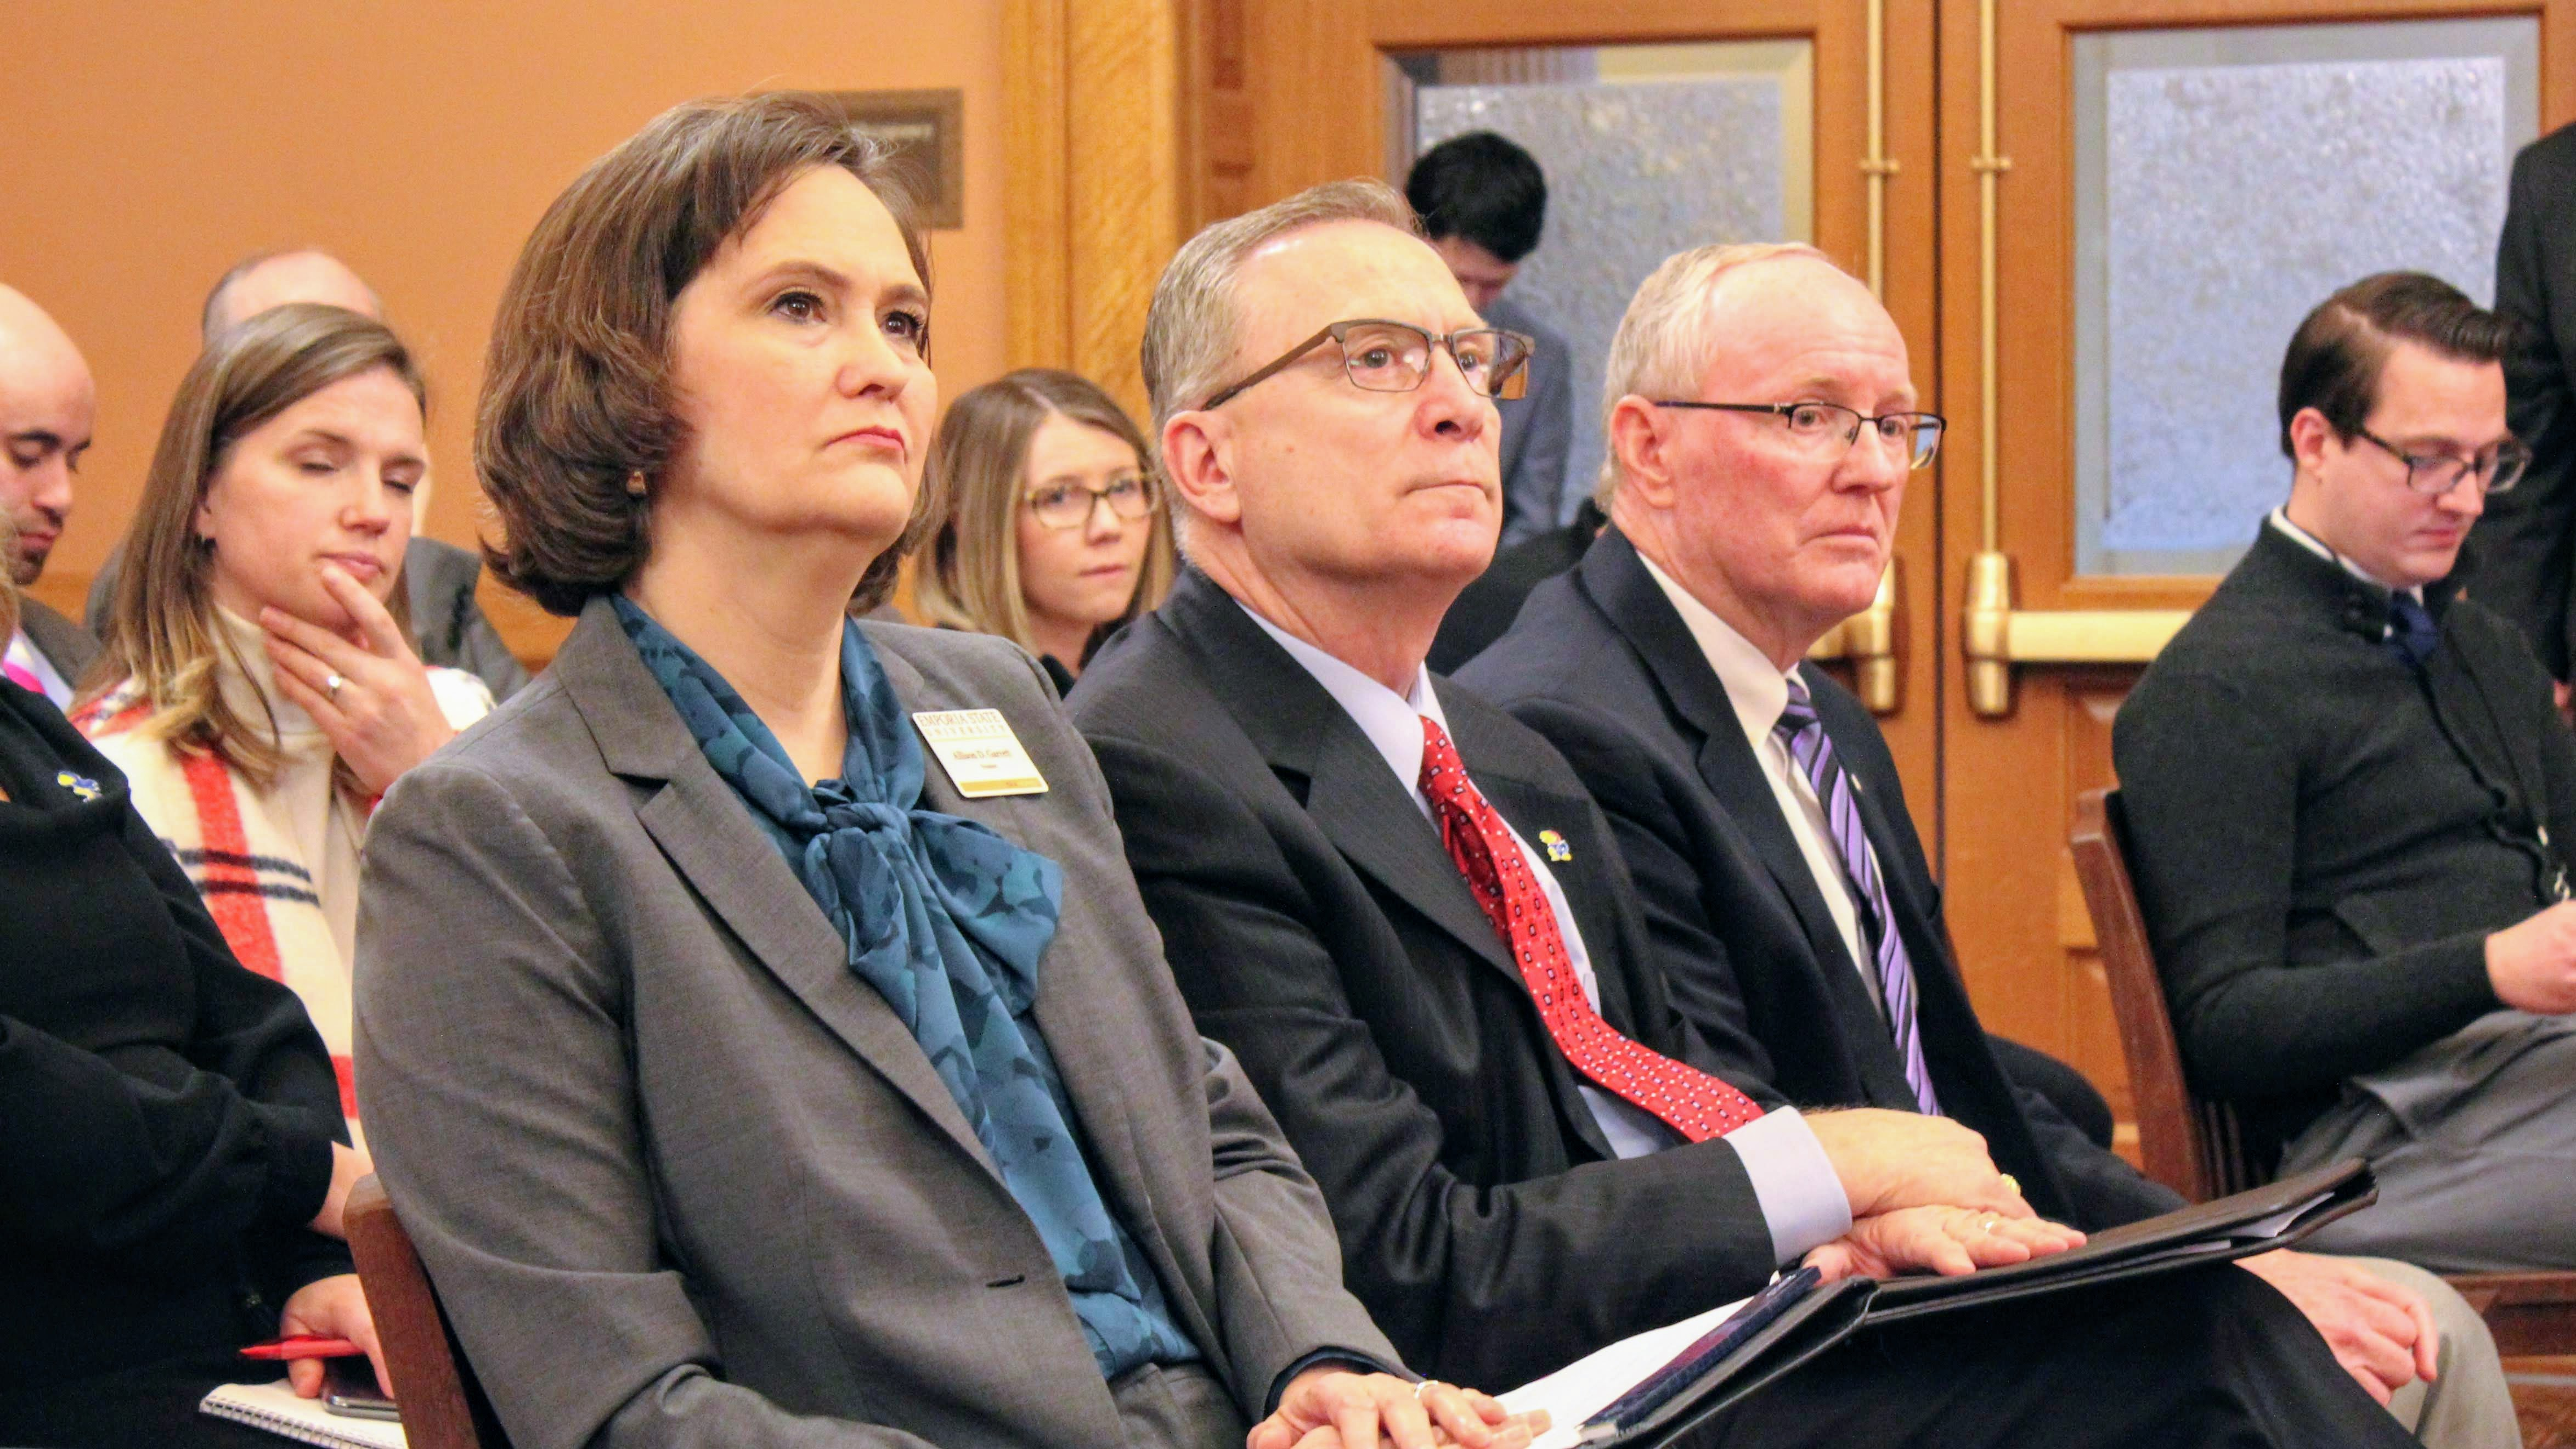 Emporia State University President Allison Garrett (left), KU Director of Athletics Jeff Long (center) and Kansas State Athletics Director Gene Taylor testified in support of a bill that would allow student-athletes to be paid for endorsements. (Photo by Stephen Koranda, Kansas News Service)